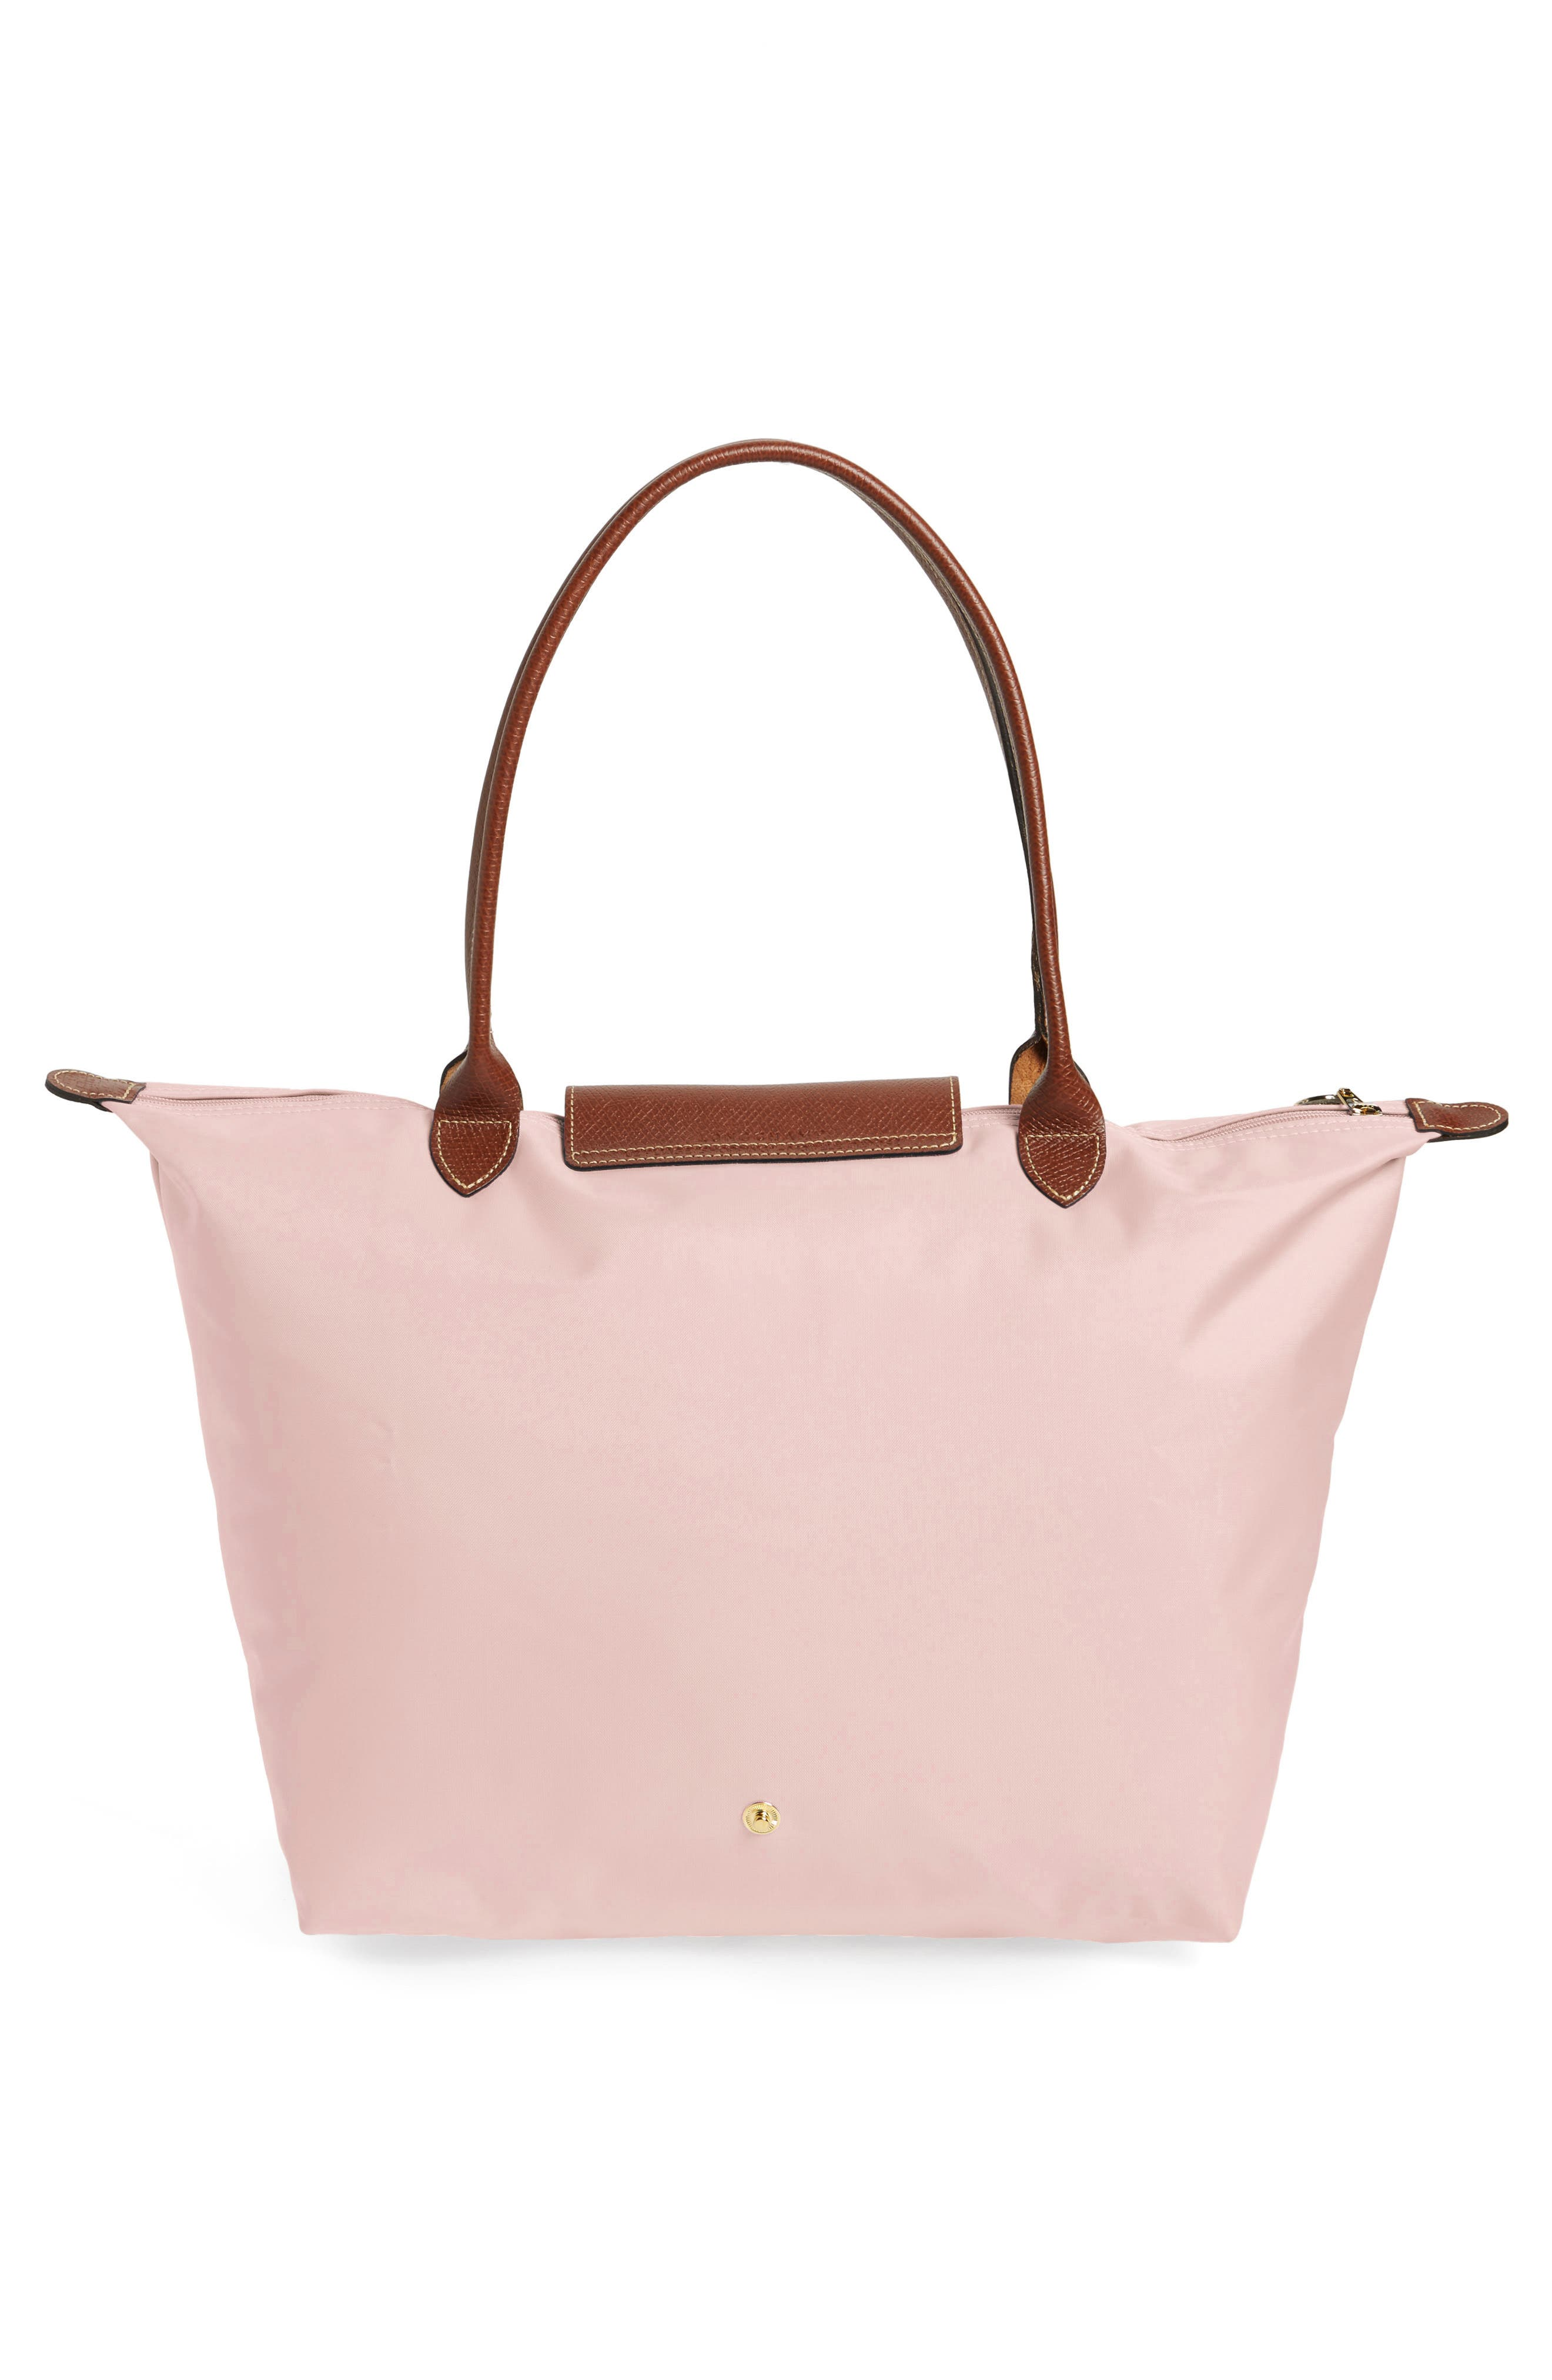 LONGCHAMP, Large Le Pliage Tote, Alternate thumbnail 3, color, PINK ICE